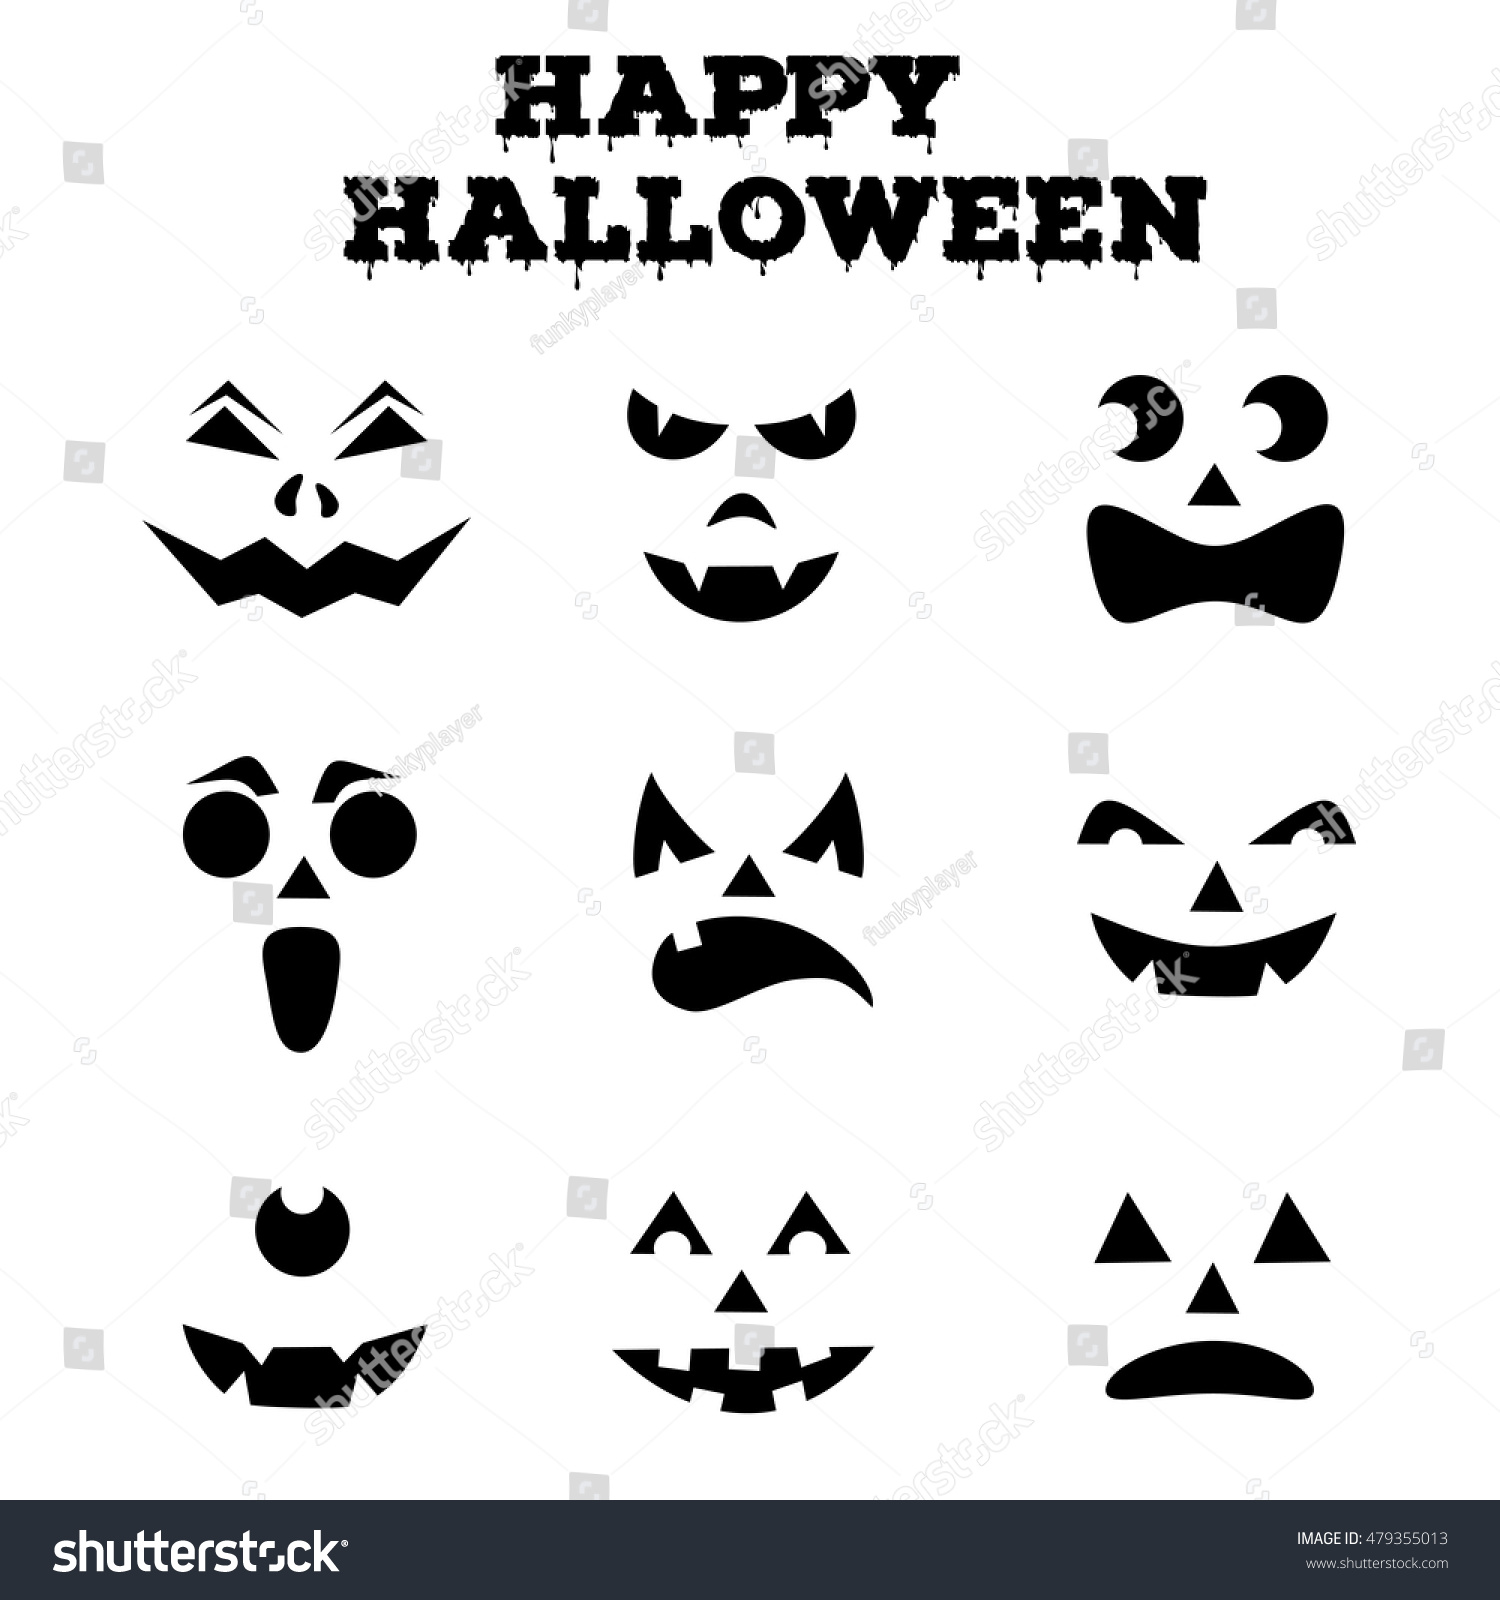 Collection Halloween Pumpkins Carved Faces Silhouettes Stock Vector